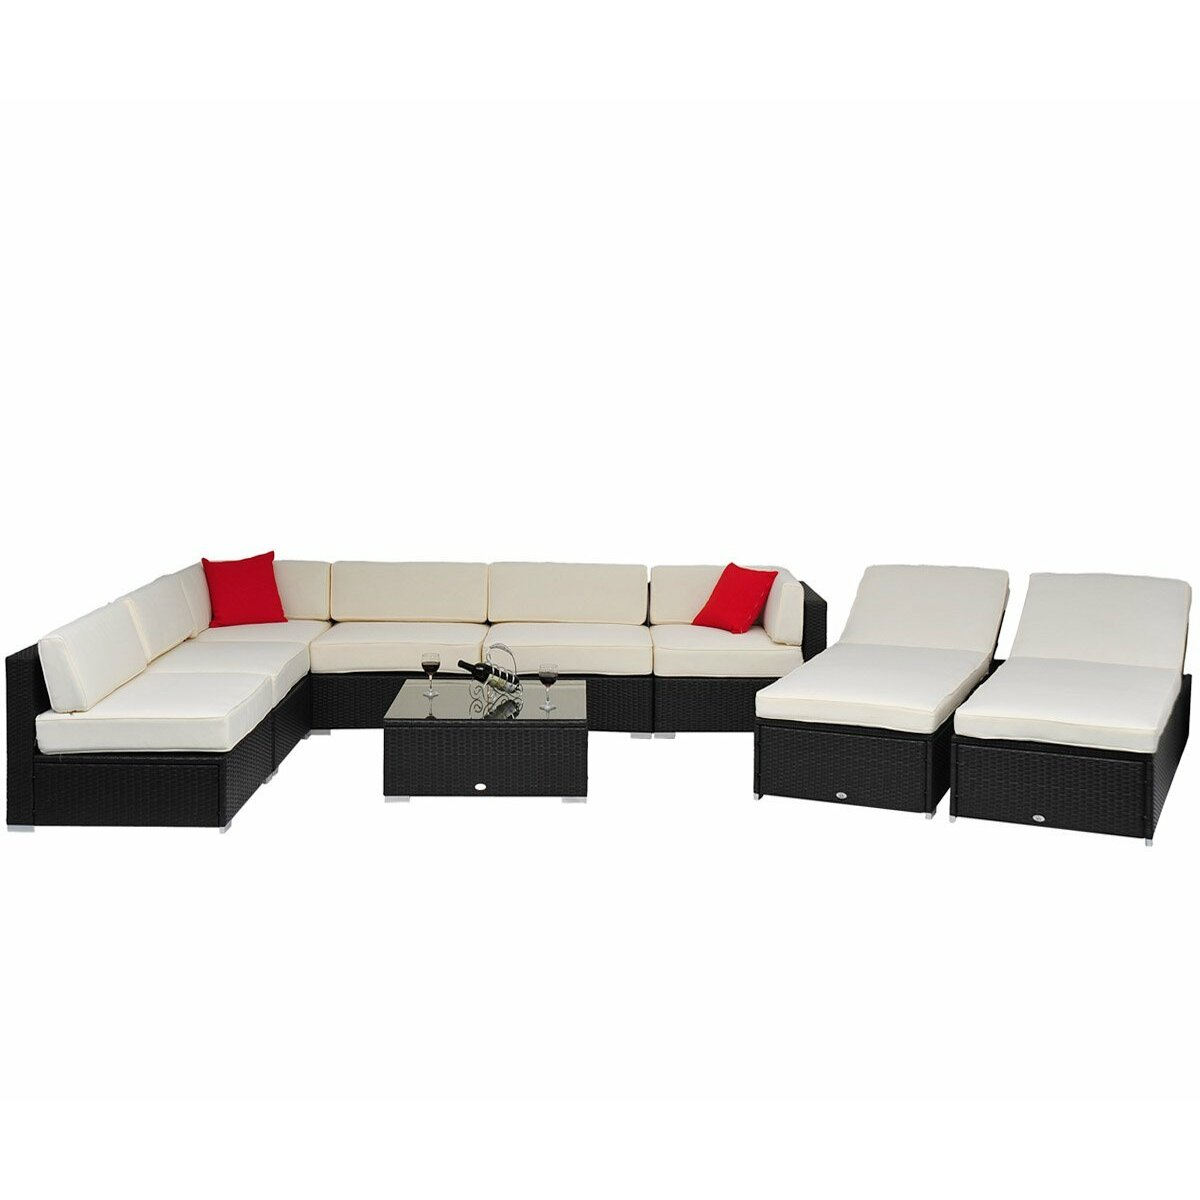 Outsunny 9 Piece Lounge Seating Group with Cushion & Reviews